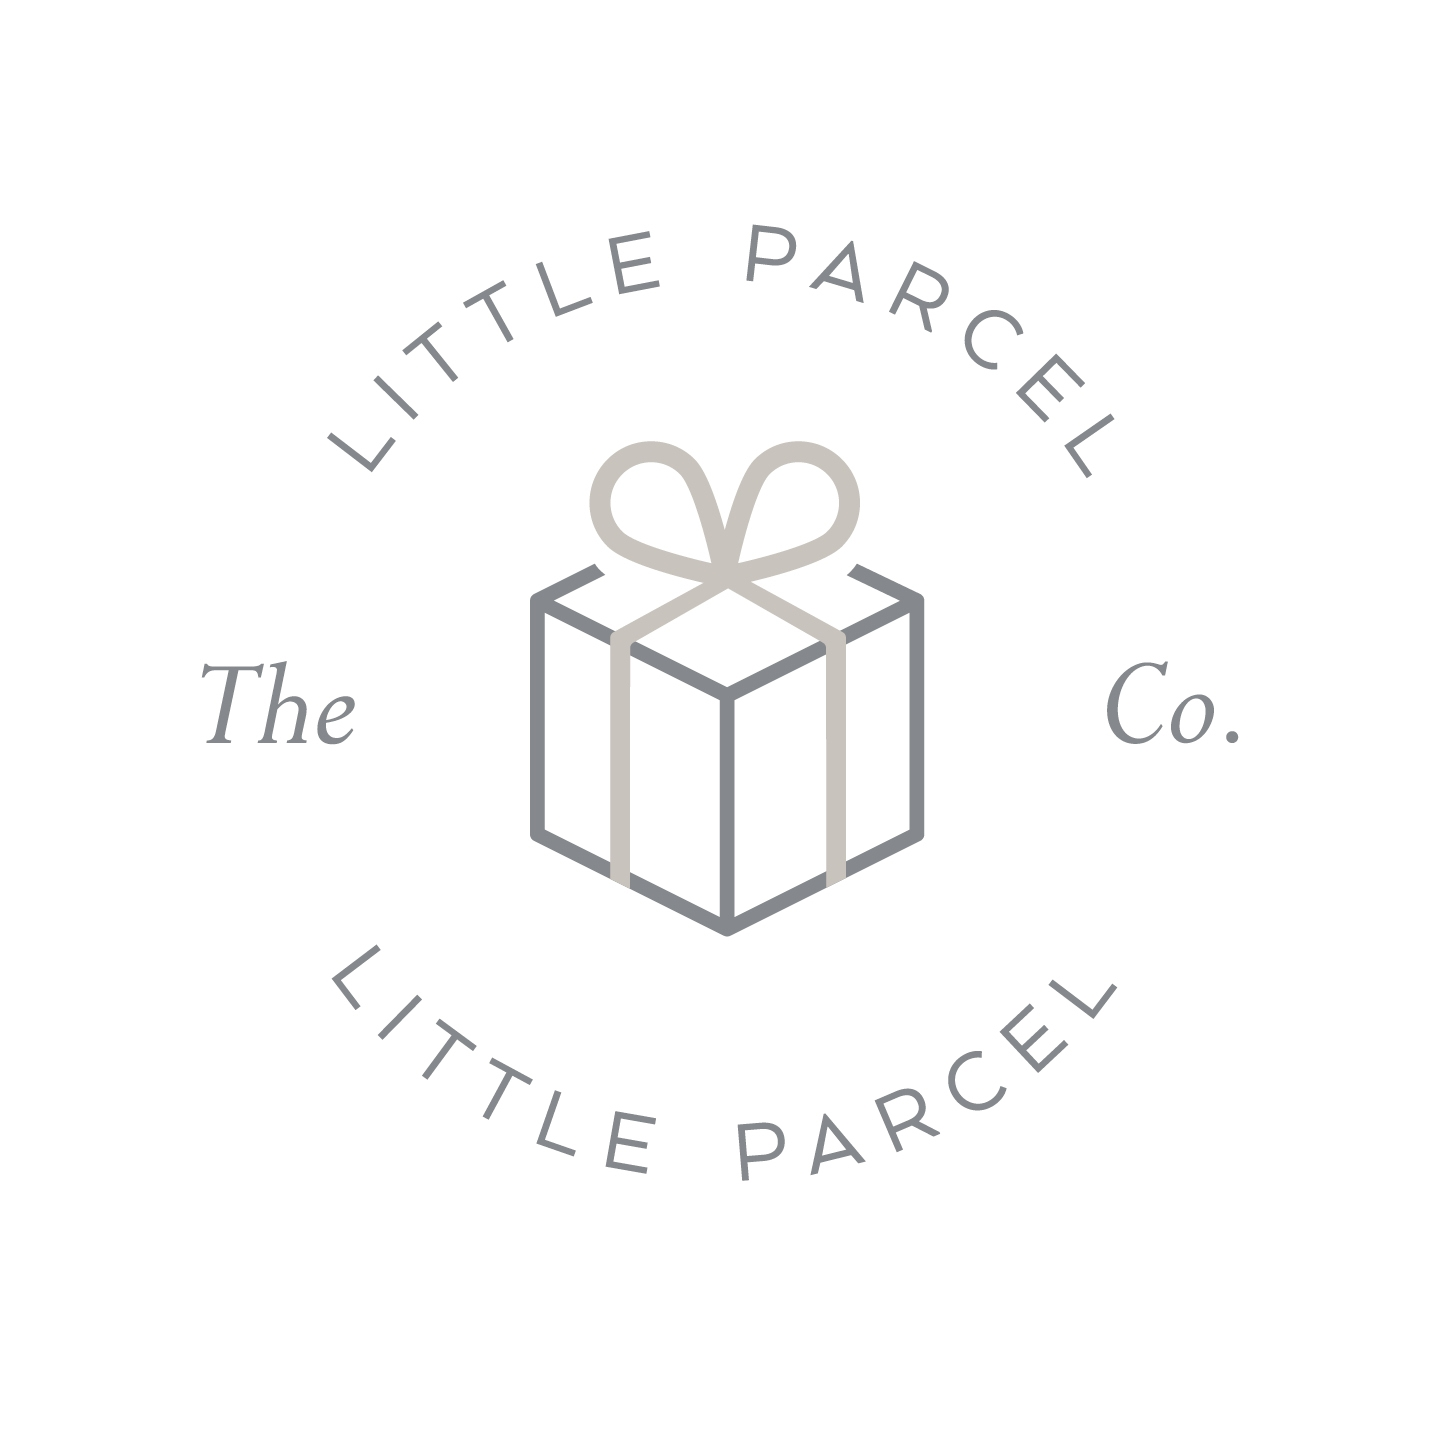 Joanne_Tapodi_Creative_The_Little_Parcel_Co_Logo.jpg